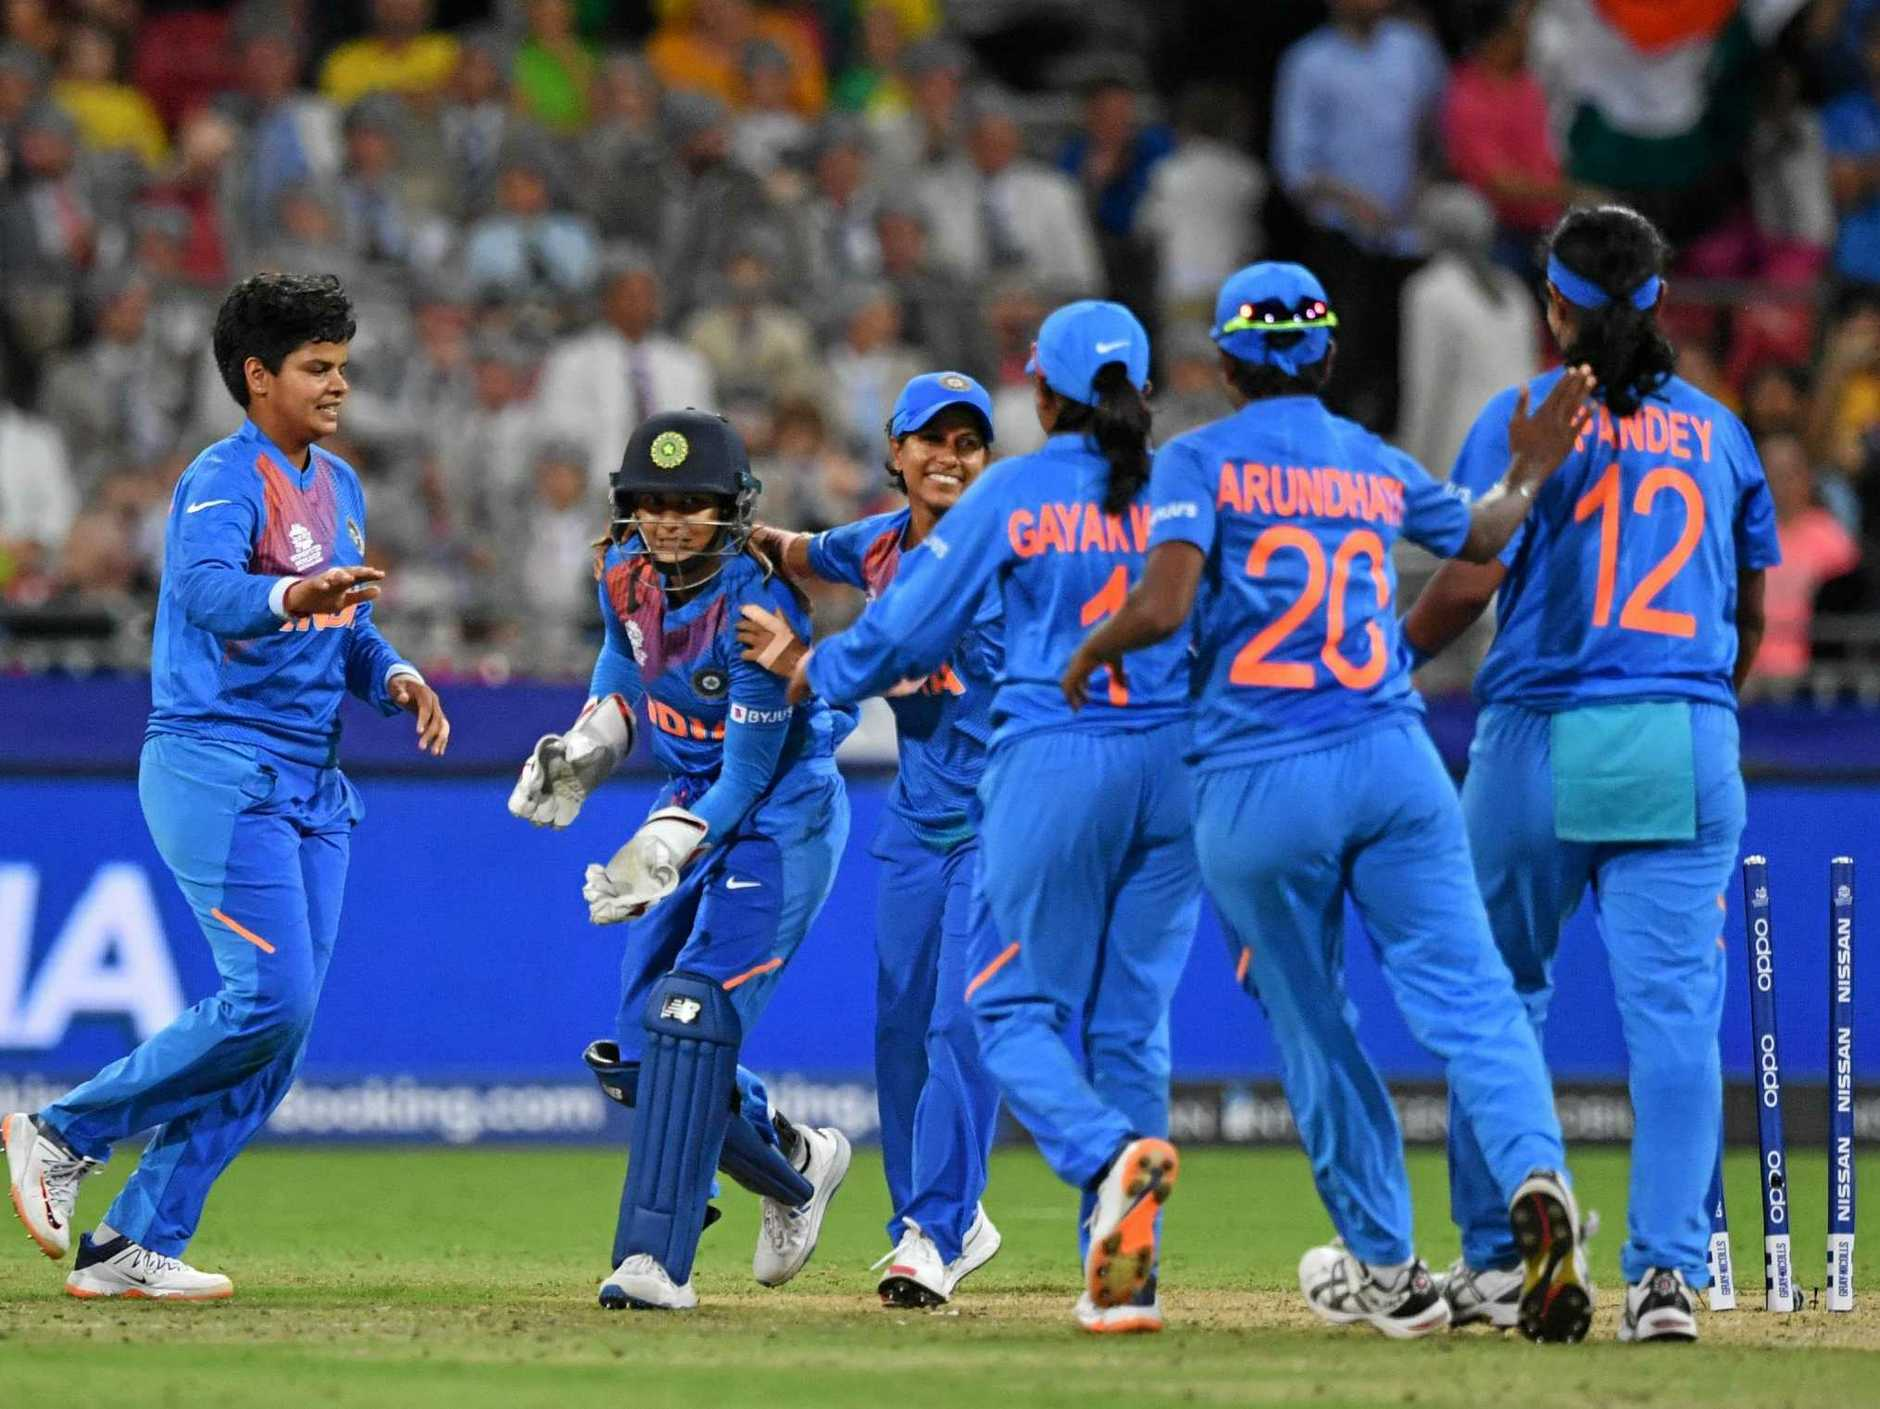 India celebrate after Taniya Bhatia's stumping of Australia's Annabel Sutherland during their T20 World Cup cricket match in Sydney on Friday night. Picture: Dean Lewins/AAP